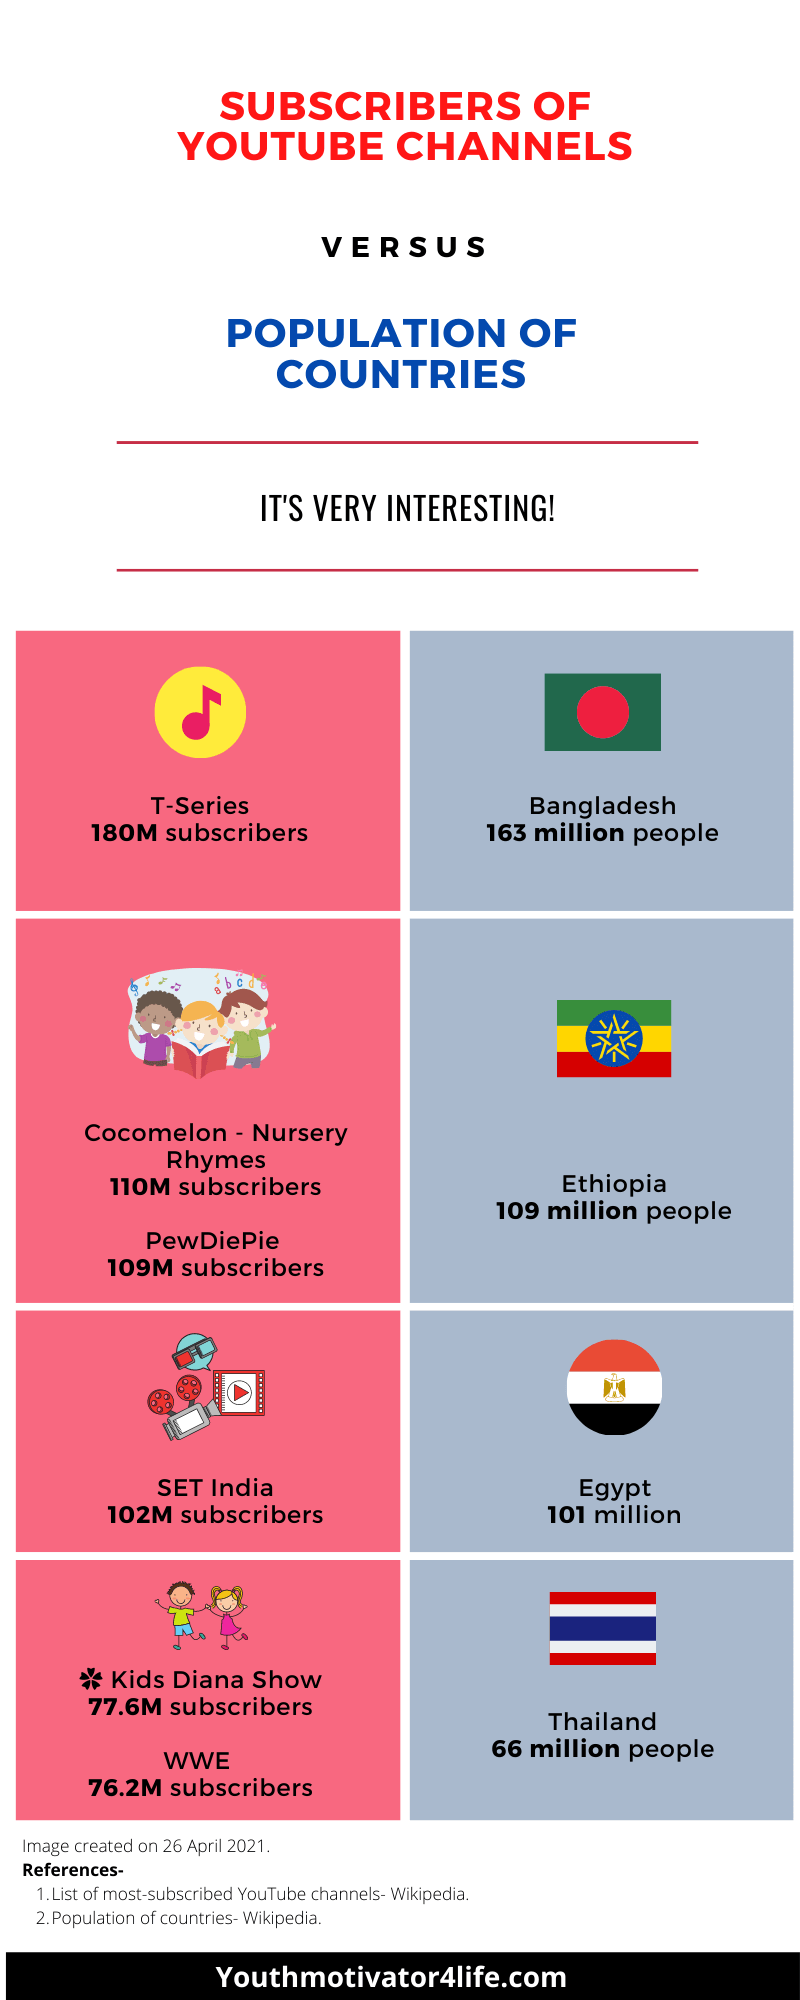 Subscribers of YouTube channels vs population of countries